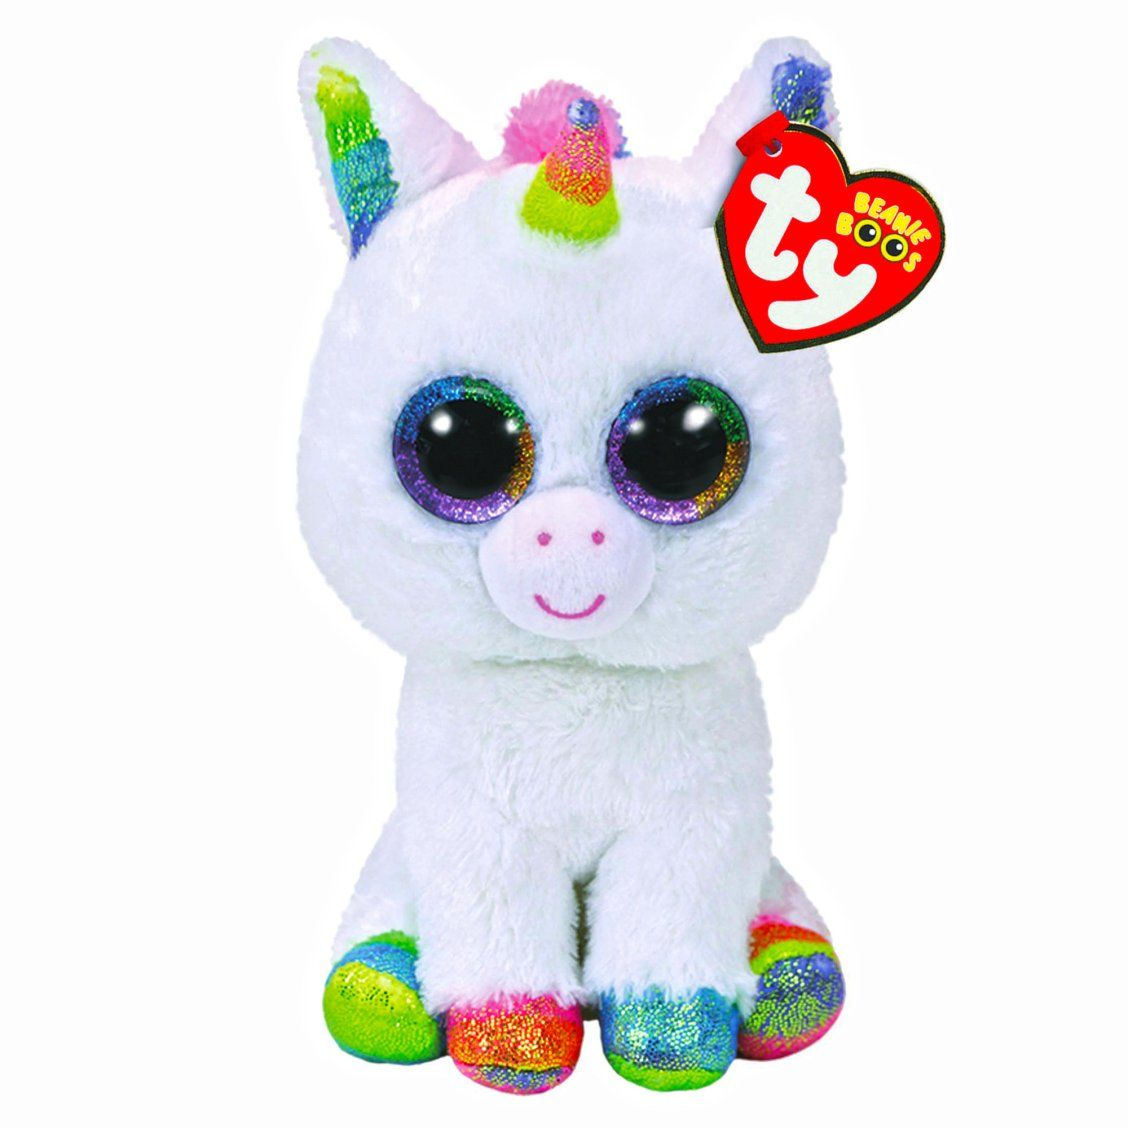 TY Beanie Boos Medium Pixy The Unicorn Plush Toy  86896d6bfbdc